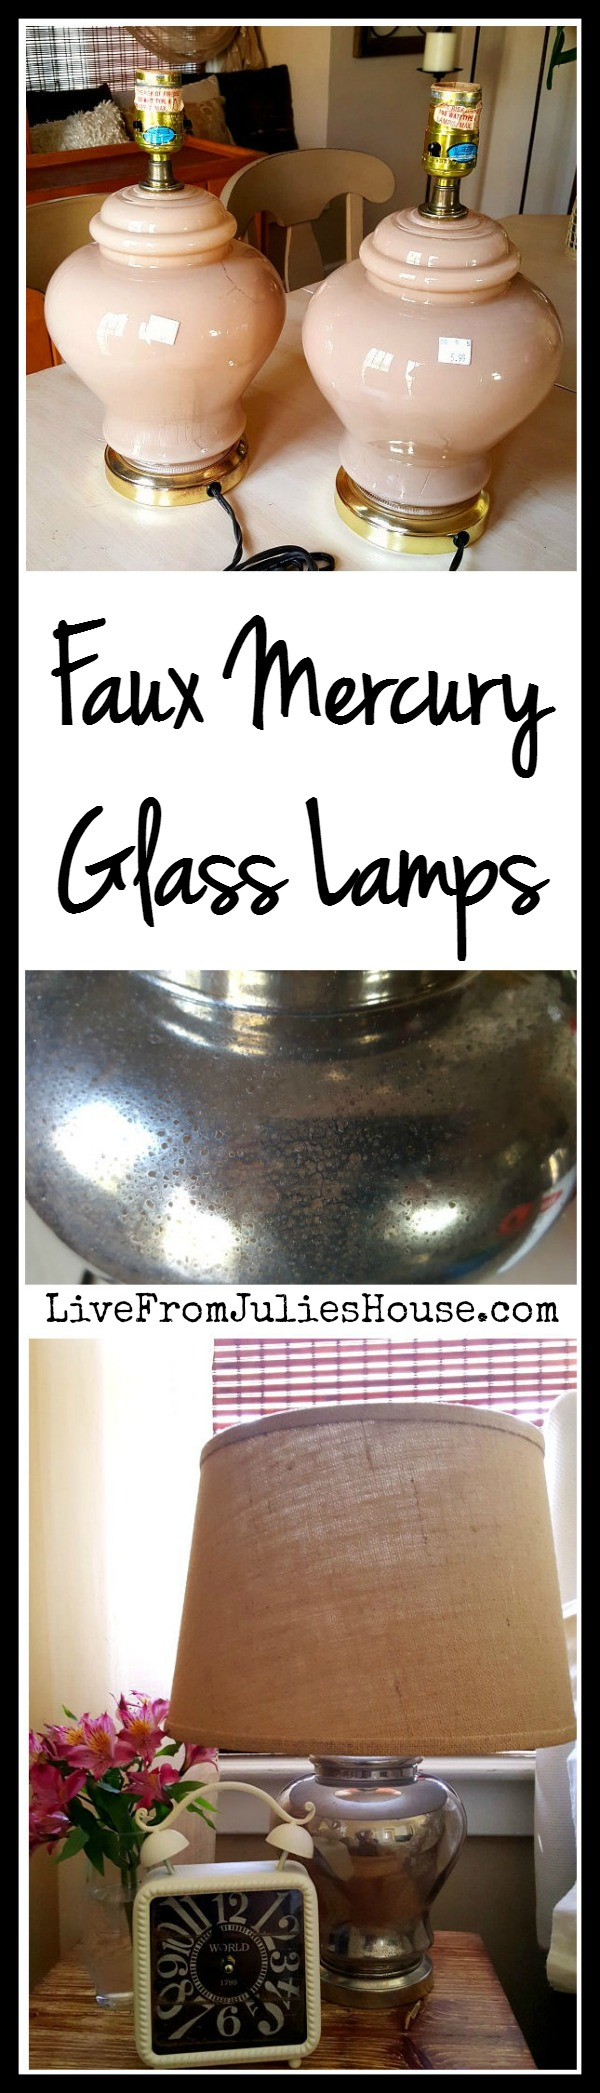 Faux Mercury Glass Lamp Tutorial - I turned dated $5.99 thrift store lamps into stylish additions to my bedroom with a fast and easy faux mercury glass paint technique.